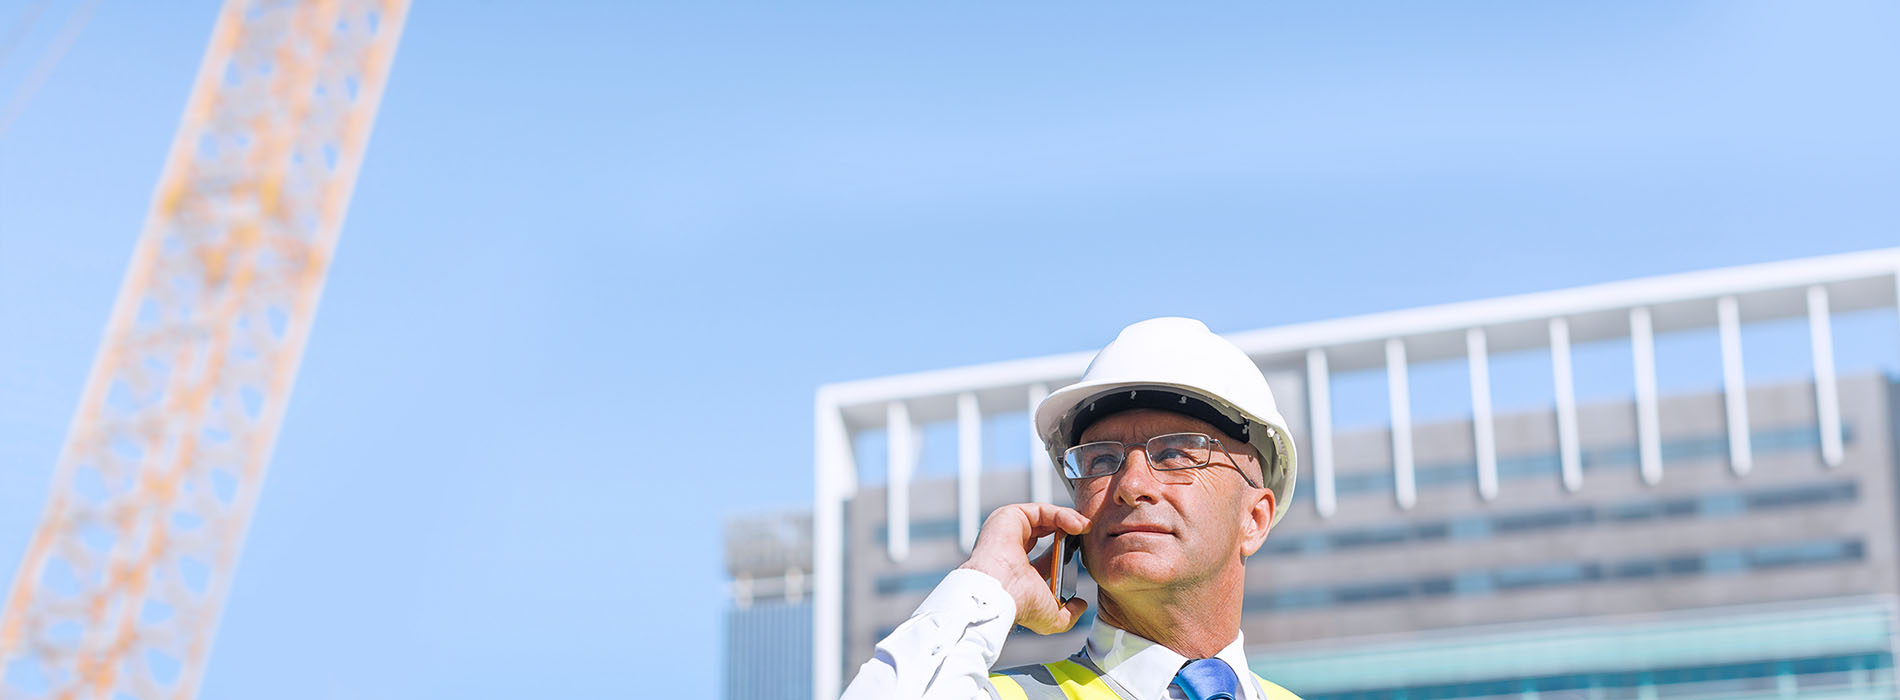 Construction worker talking on smartphone